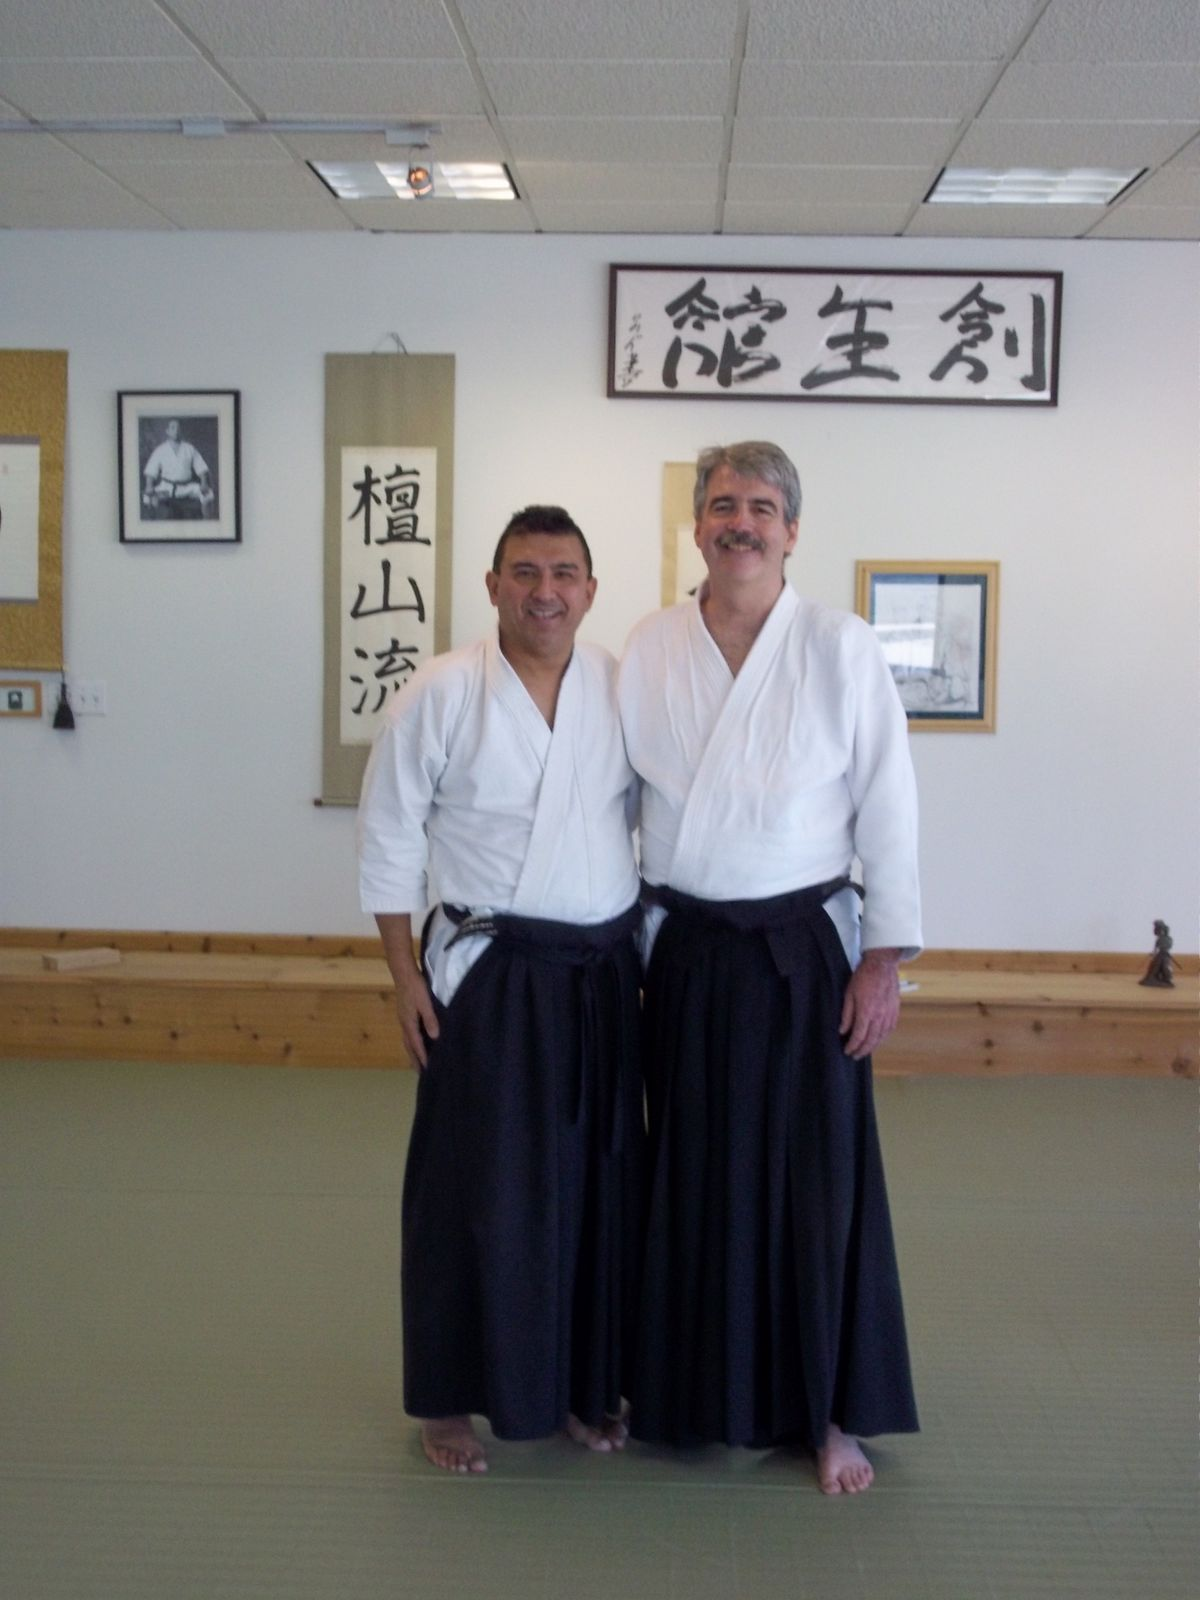 A Blast from the past - Sensei Dr. Dean Funk visits A Center for the Martial Arts - Soseikan Dojo Nov. 27th 2010